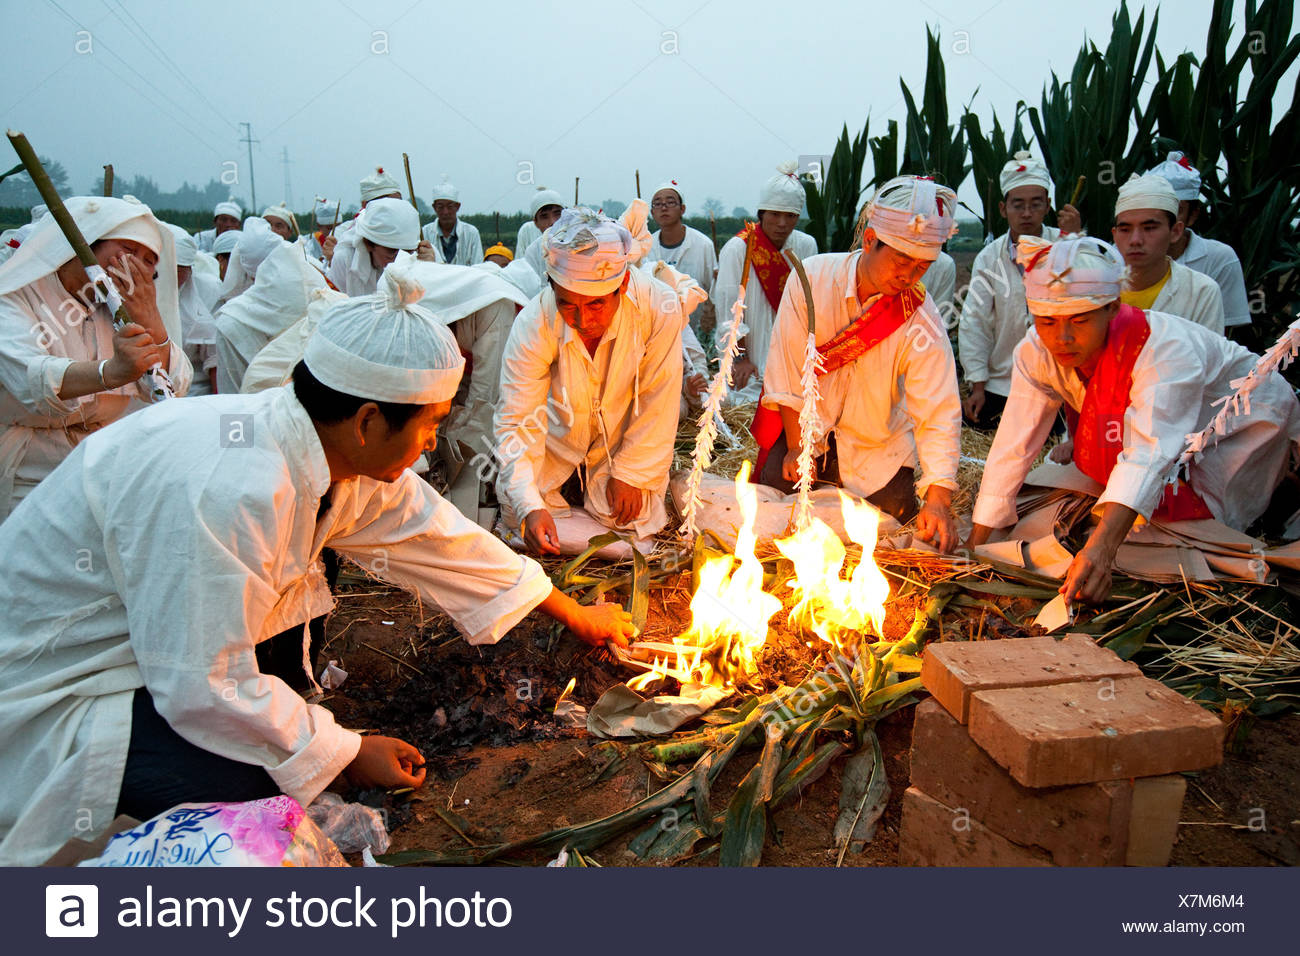 At a grave, relatives observe the ritual burning of paper wreaths. - Stock Image